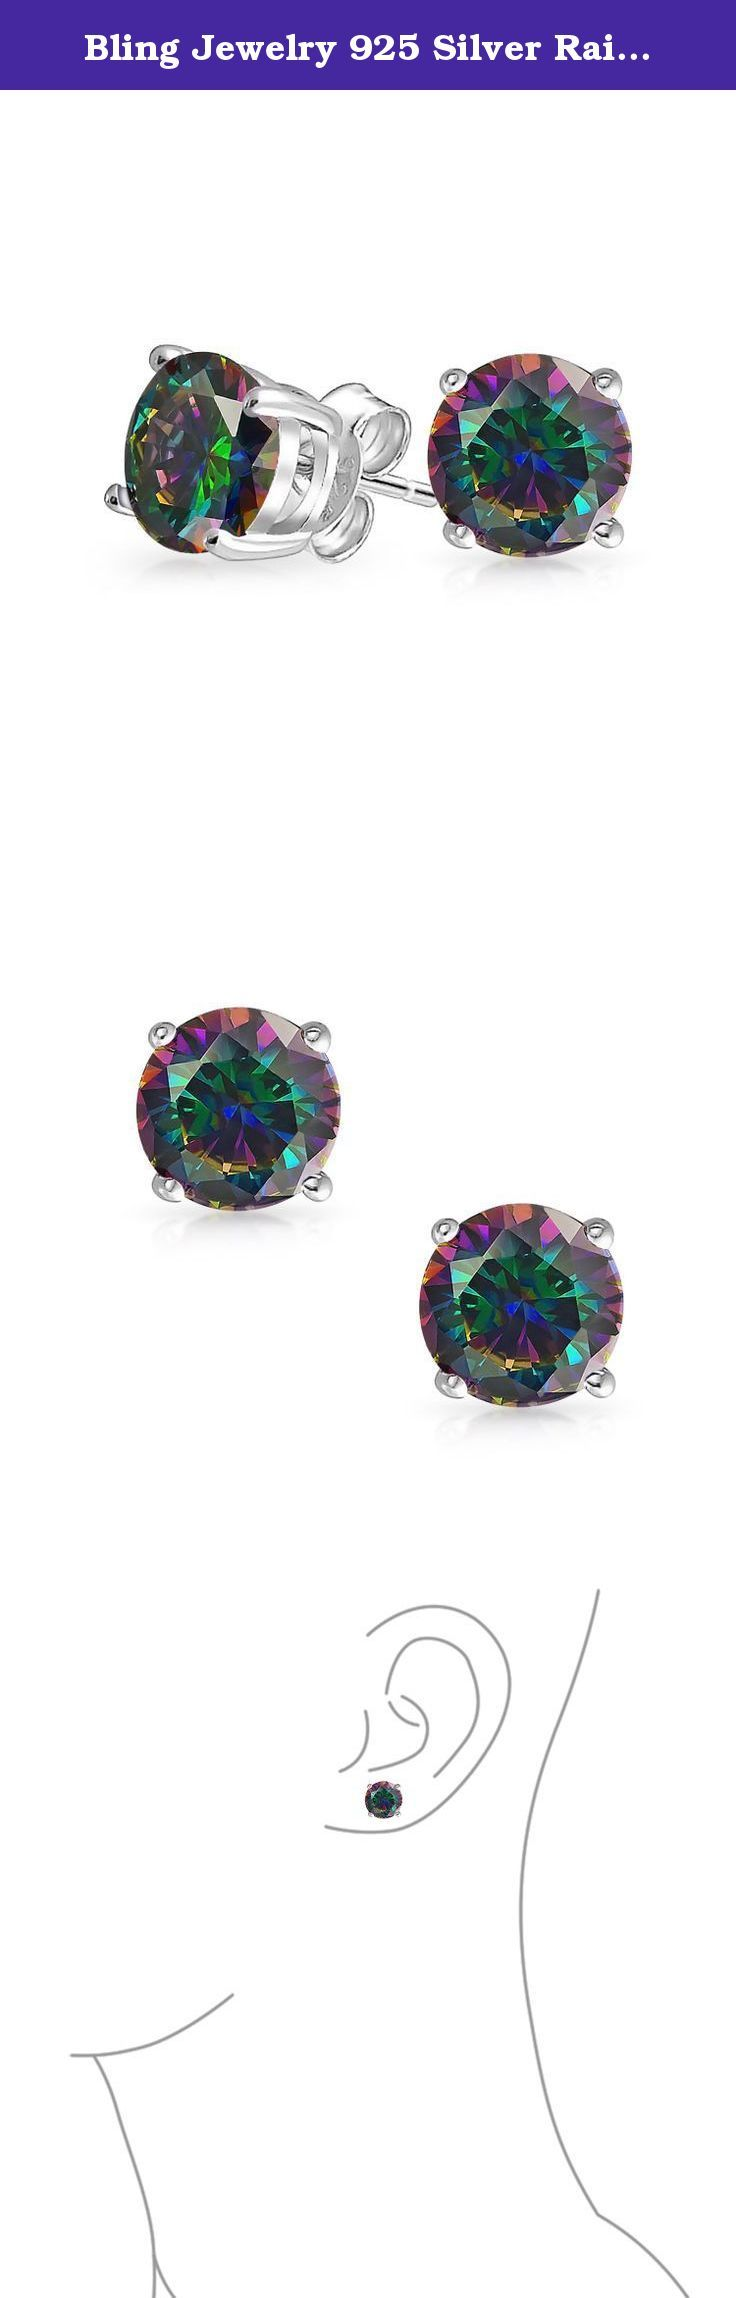 Bling Jewelry 925 Silver Rainbow CZ Stud Earrings 9mm. These gorgeous Simulated Rainbow Topaz cz stud earrings will look great on your earlobe. The Simulated Topaz colored stones are a beautiful round cut shape that produces lots of sparkle. Gift these earrings today. They are a smart purchase and come in an array of sizes so you will find the perfect mens stud earrings for any guy on your list.